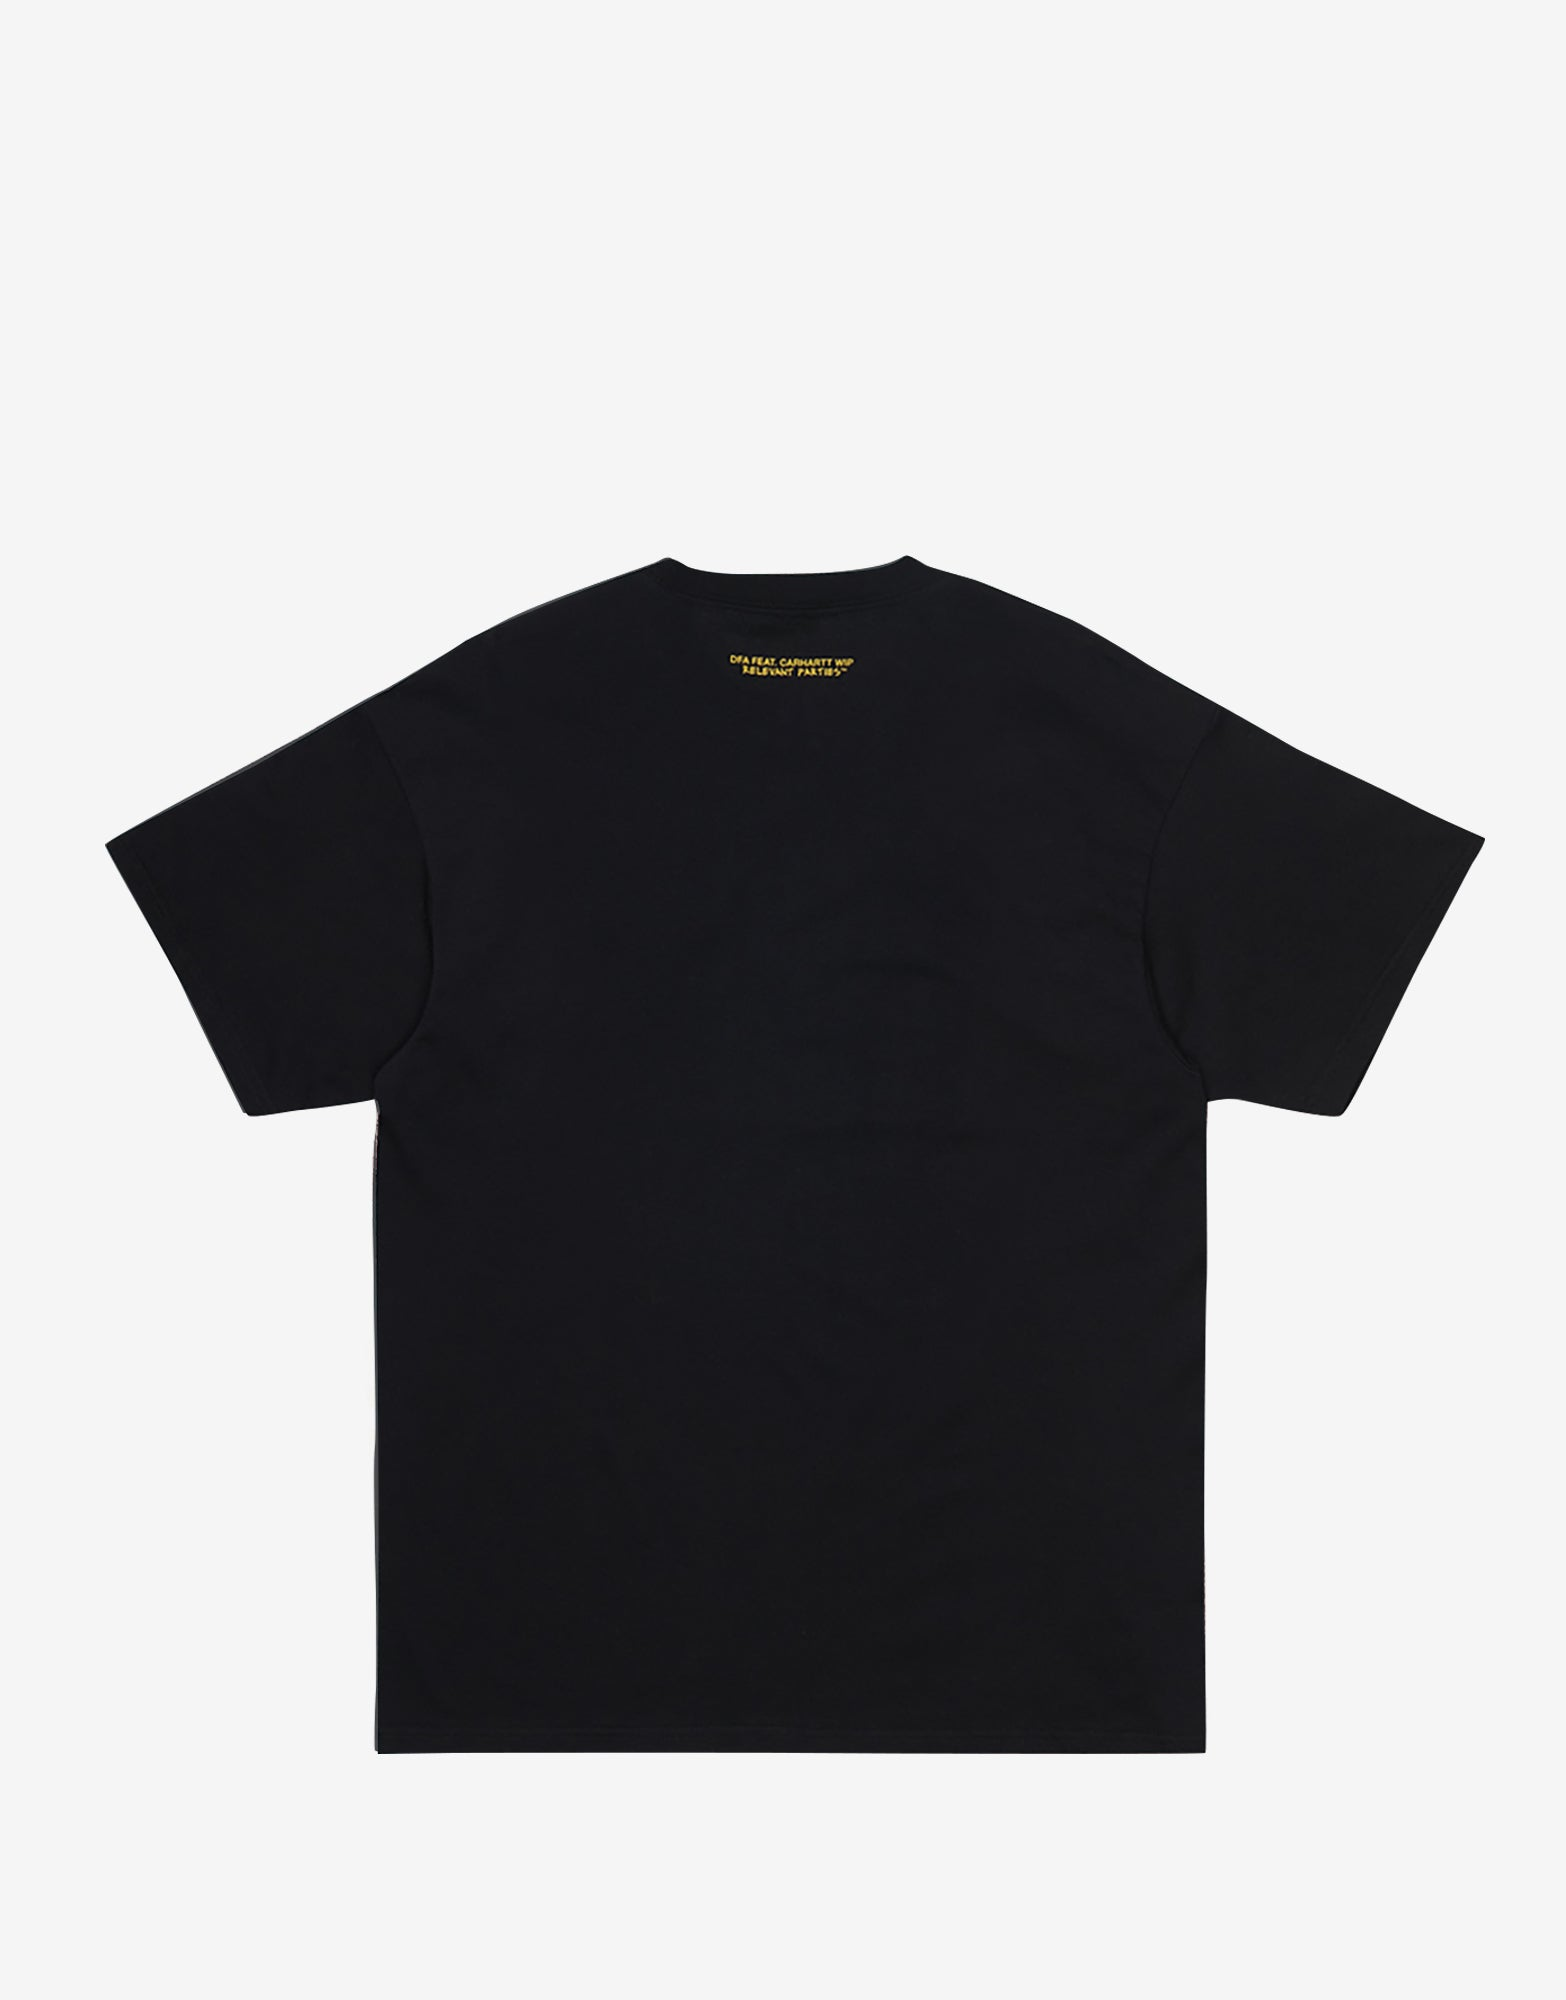 Carhartt WIP x Relevant Parties DFA T Shirt - Black